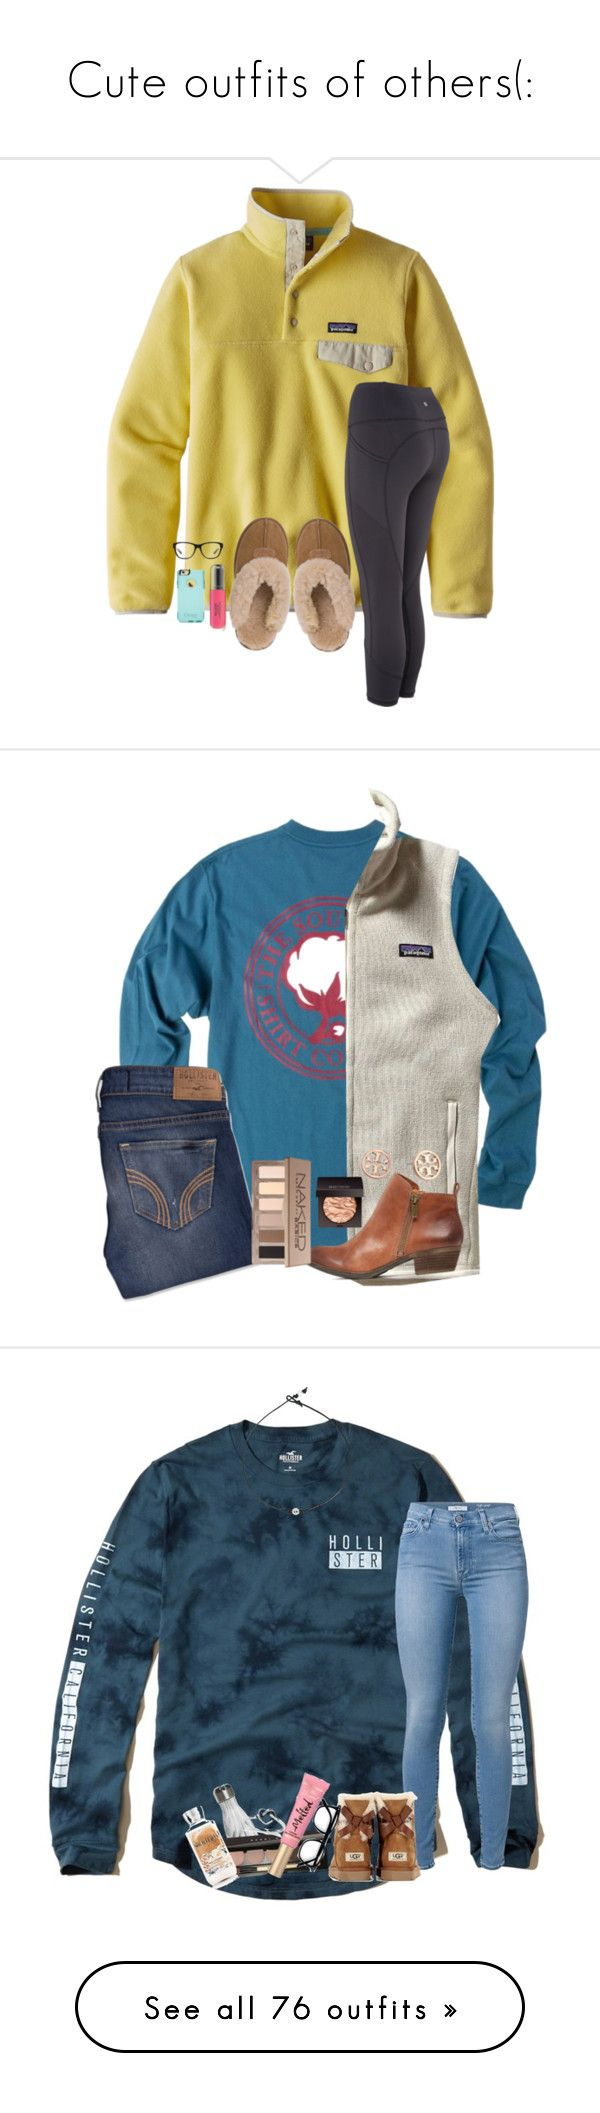 """""""Cute outfits of others(:"""" by arieannahicks ❤ liked on Polyvore featuring Patagonia, UGG Australia, Revlon, OtterBox, Ralph Lauren, Hollister Co., Tory Burch, Laura Mercier, Urban Decay and beauty"""